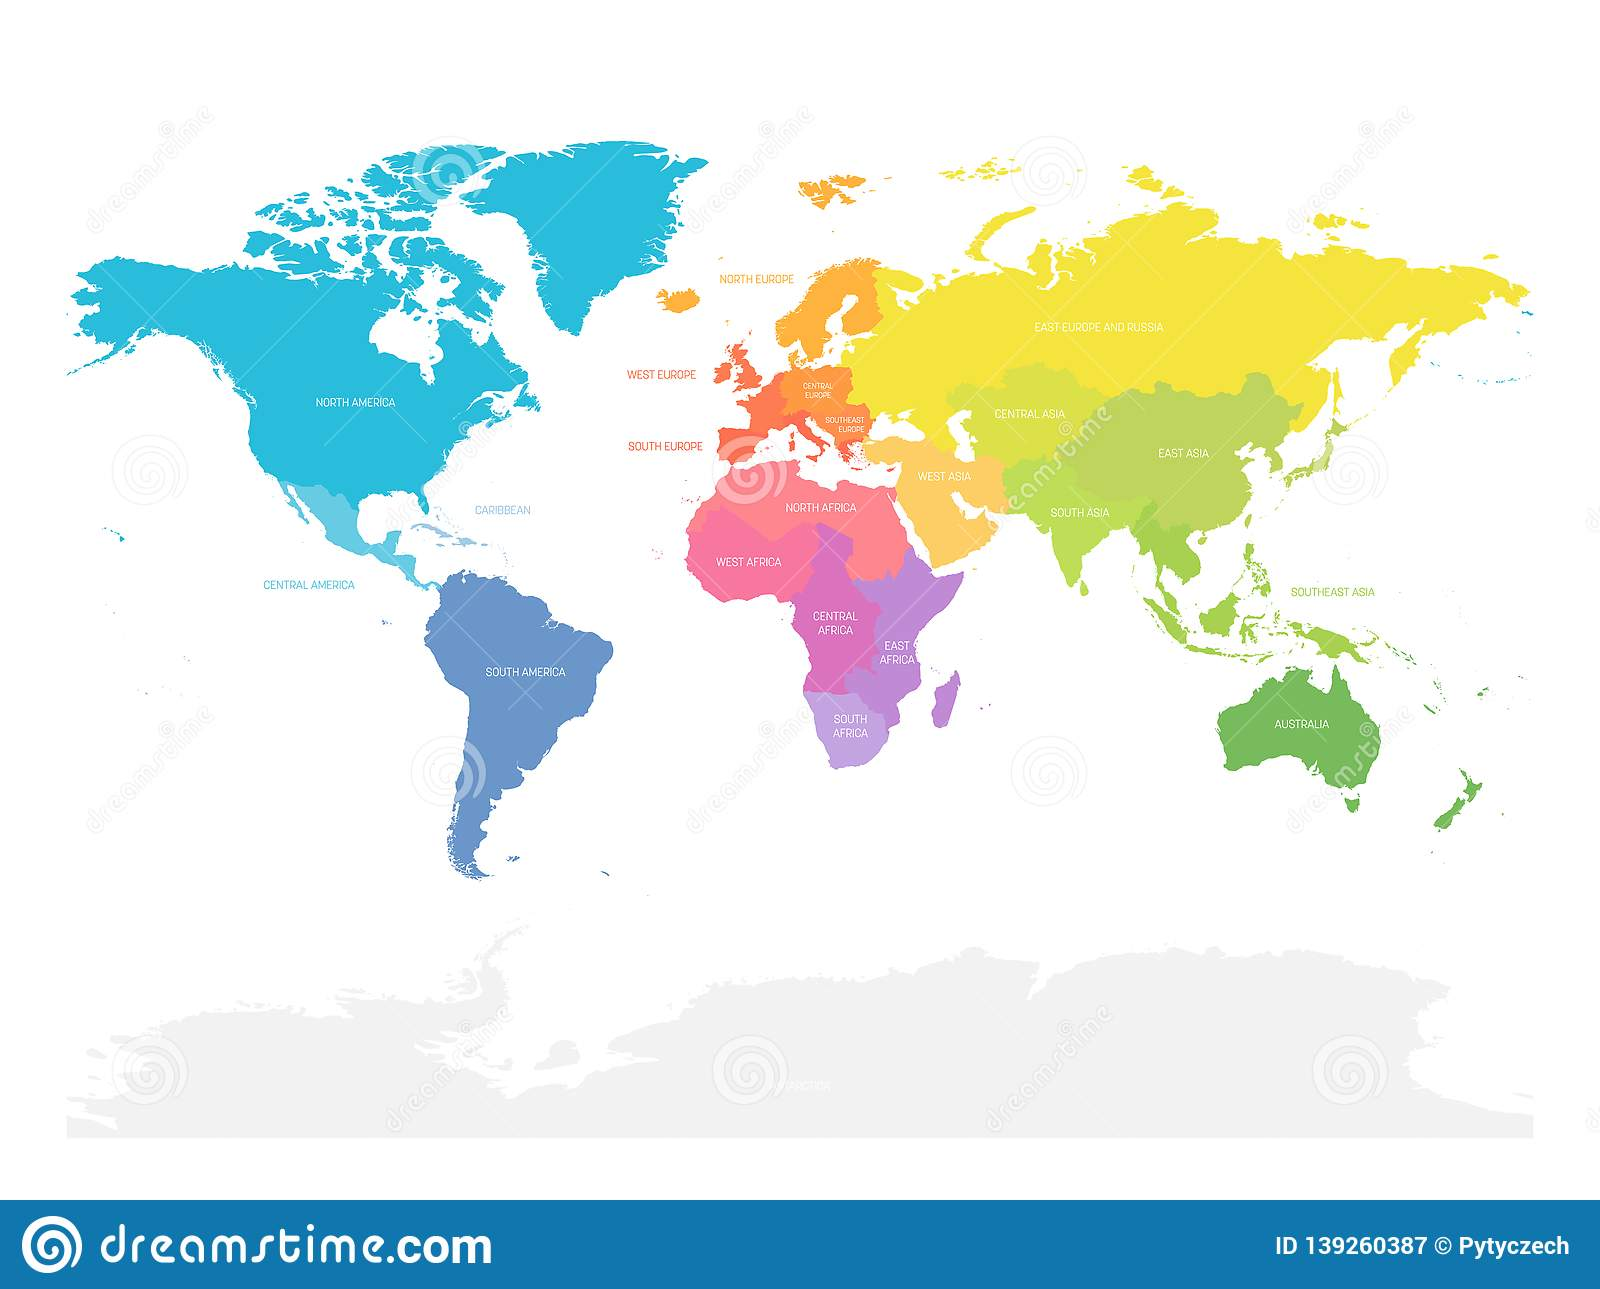 Colorful Map Of World Doivided Into Regions. Simple Flat ... on simple world map with all countries, simple world map printable, simple world map with continents, simple world map with grid, simple old world map, topographic map, simple europe map, simple climate map, simple world map with oceans, simple blank world map, simple flat world map, seven wonders of the world, simple world map travel, continents of the world, thematic map, simple world map drawing, simple world map political, countries of the world, simple us map, flags of the world, simple united states map, mappa mundi, simple globe map,